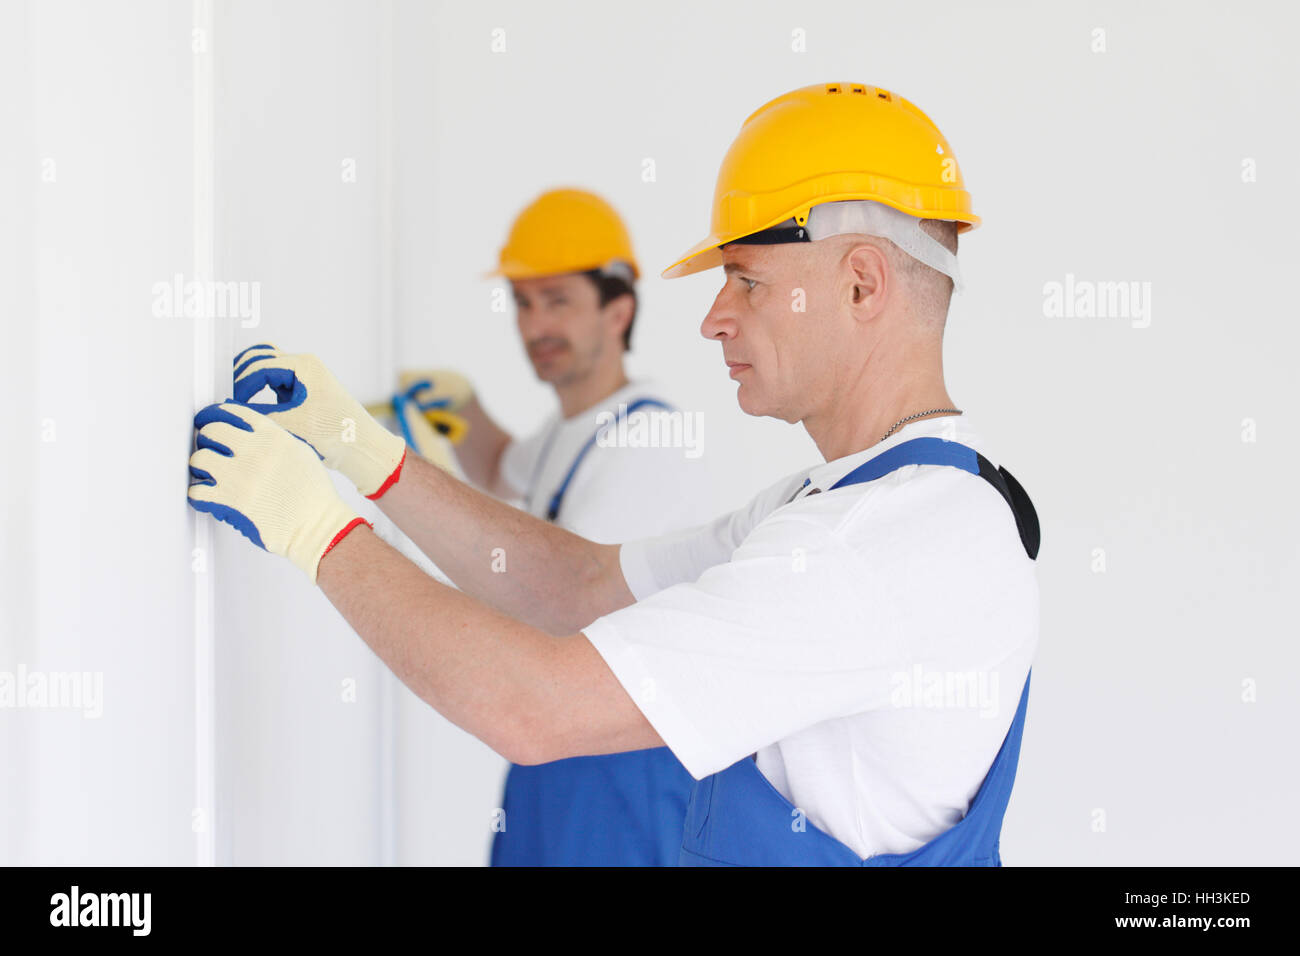 Men in uniform and hardhats measuring wall with tape - Stock Image